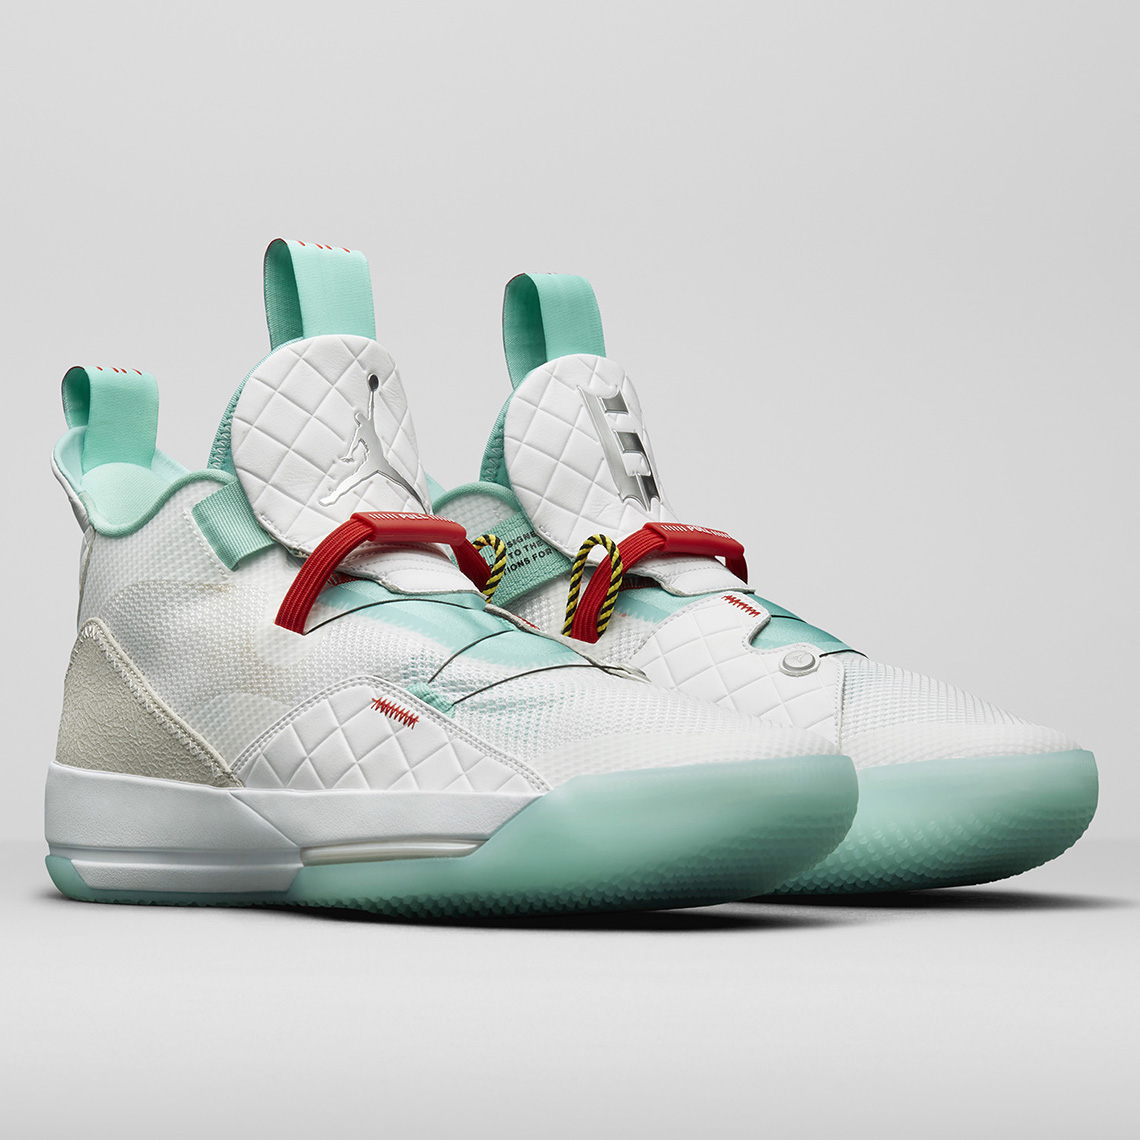 05284fe5ec7ef8 Jordan Holiday Release Dates 2018 - October November December ...